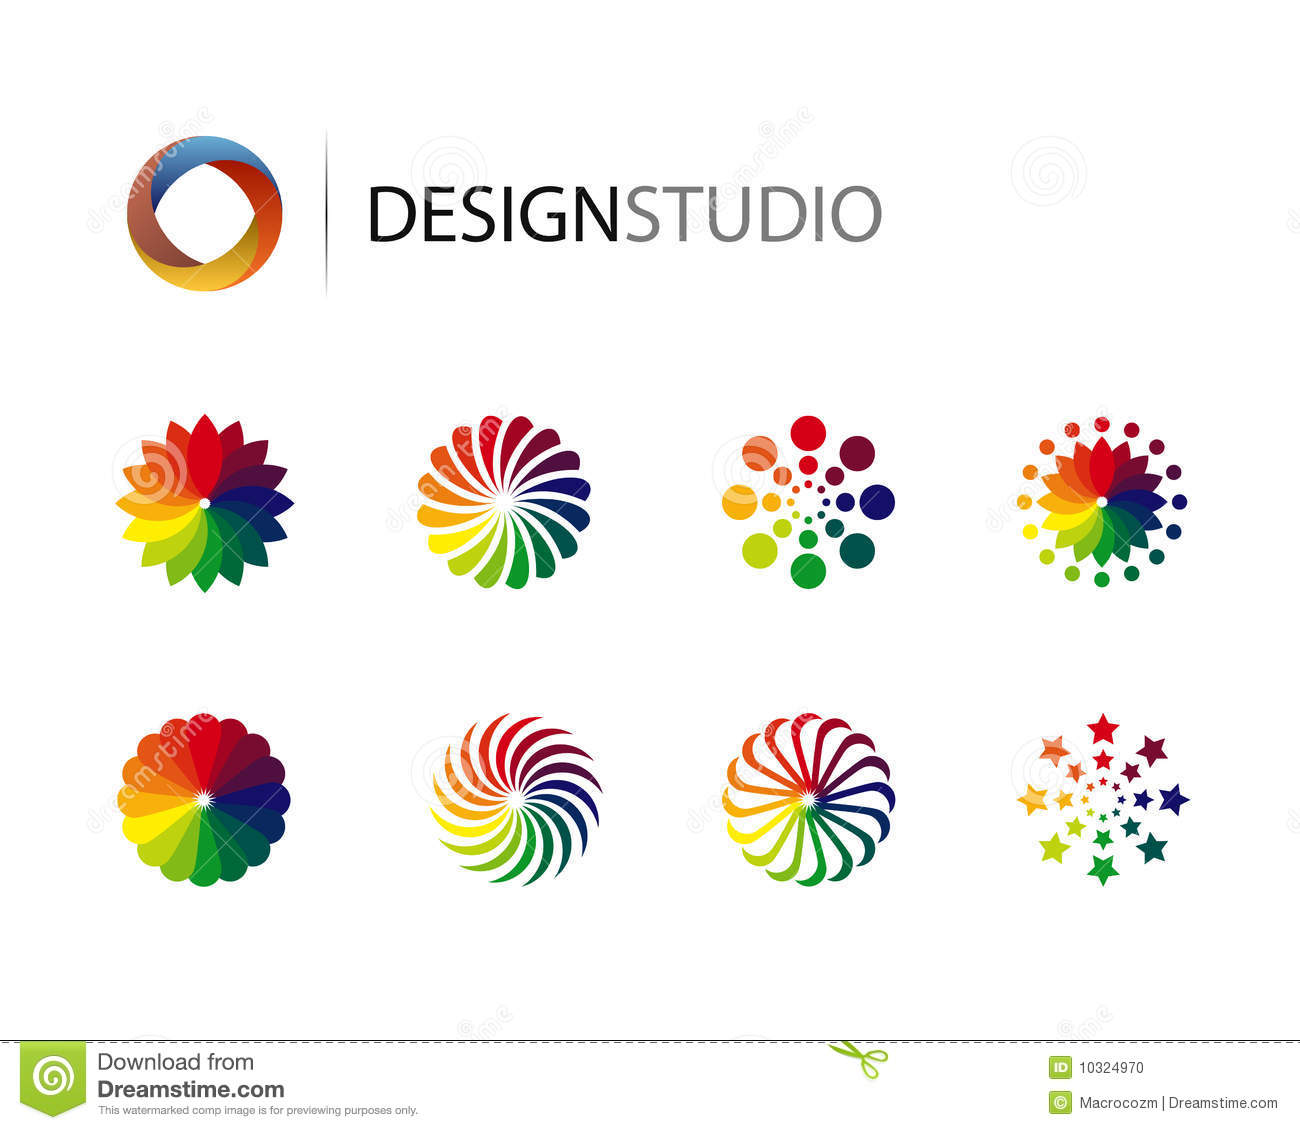 Fabuleux Set Of Design Graphic Logo Elements Stock Photo - Image: 10324970 MY18